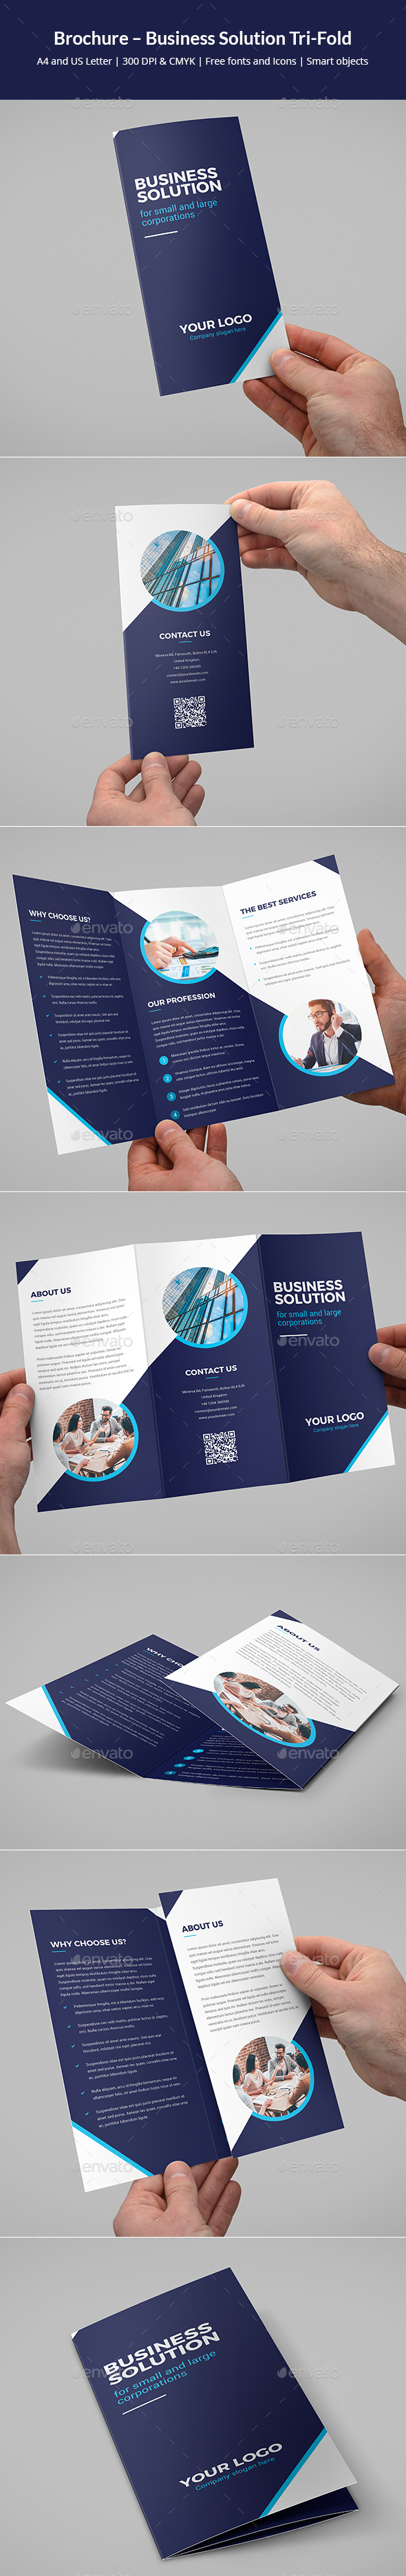 Brochure – Business Solution Tri-Fold - Corporate Brochures